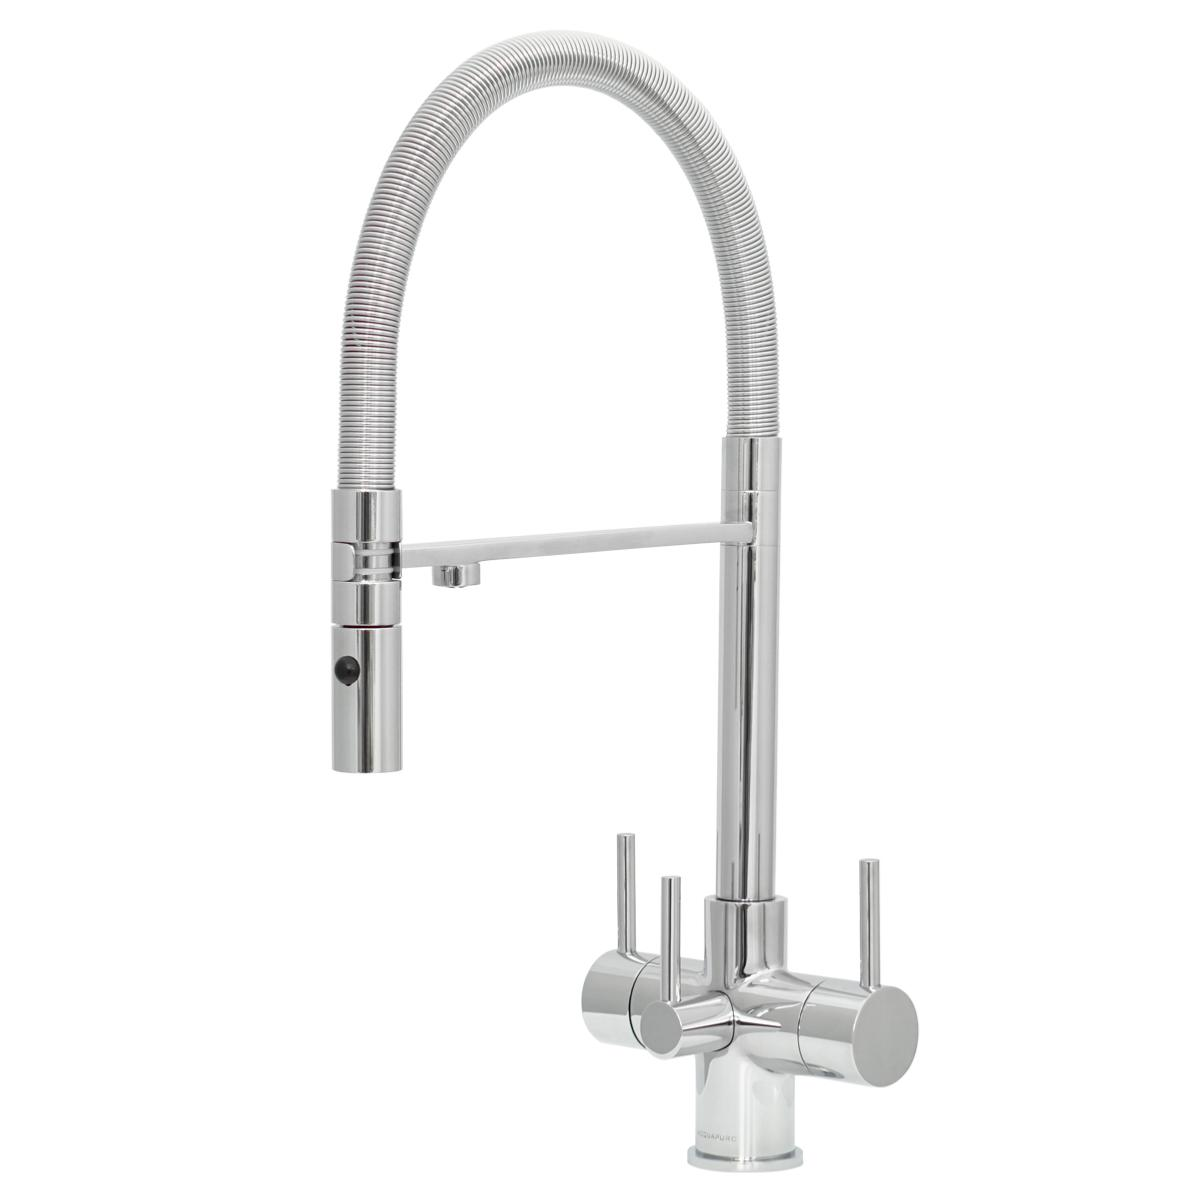 Acquapuro Aquila 3-Way 3 Lever Spray Filter Tap Chrome